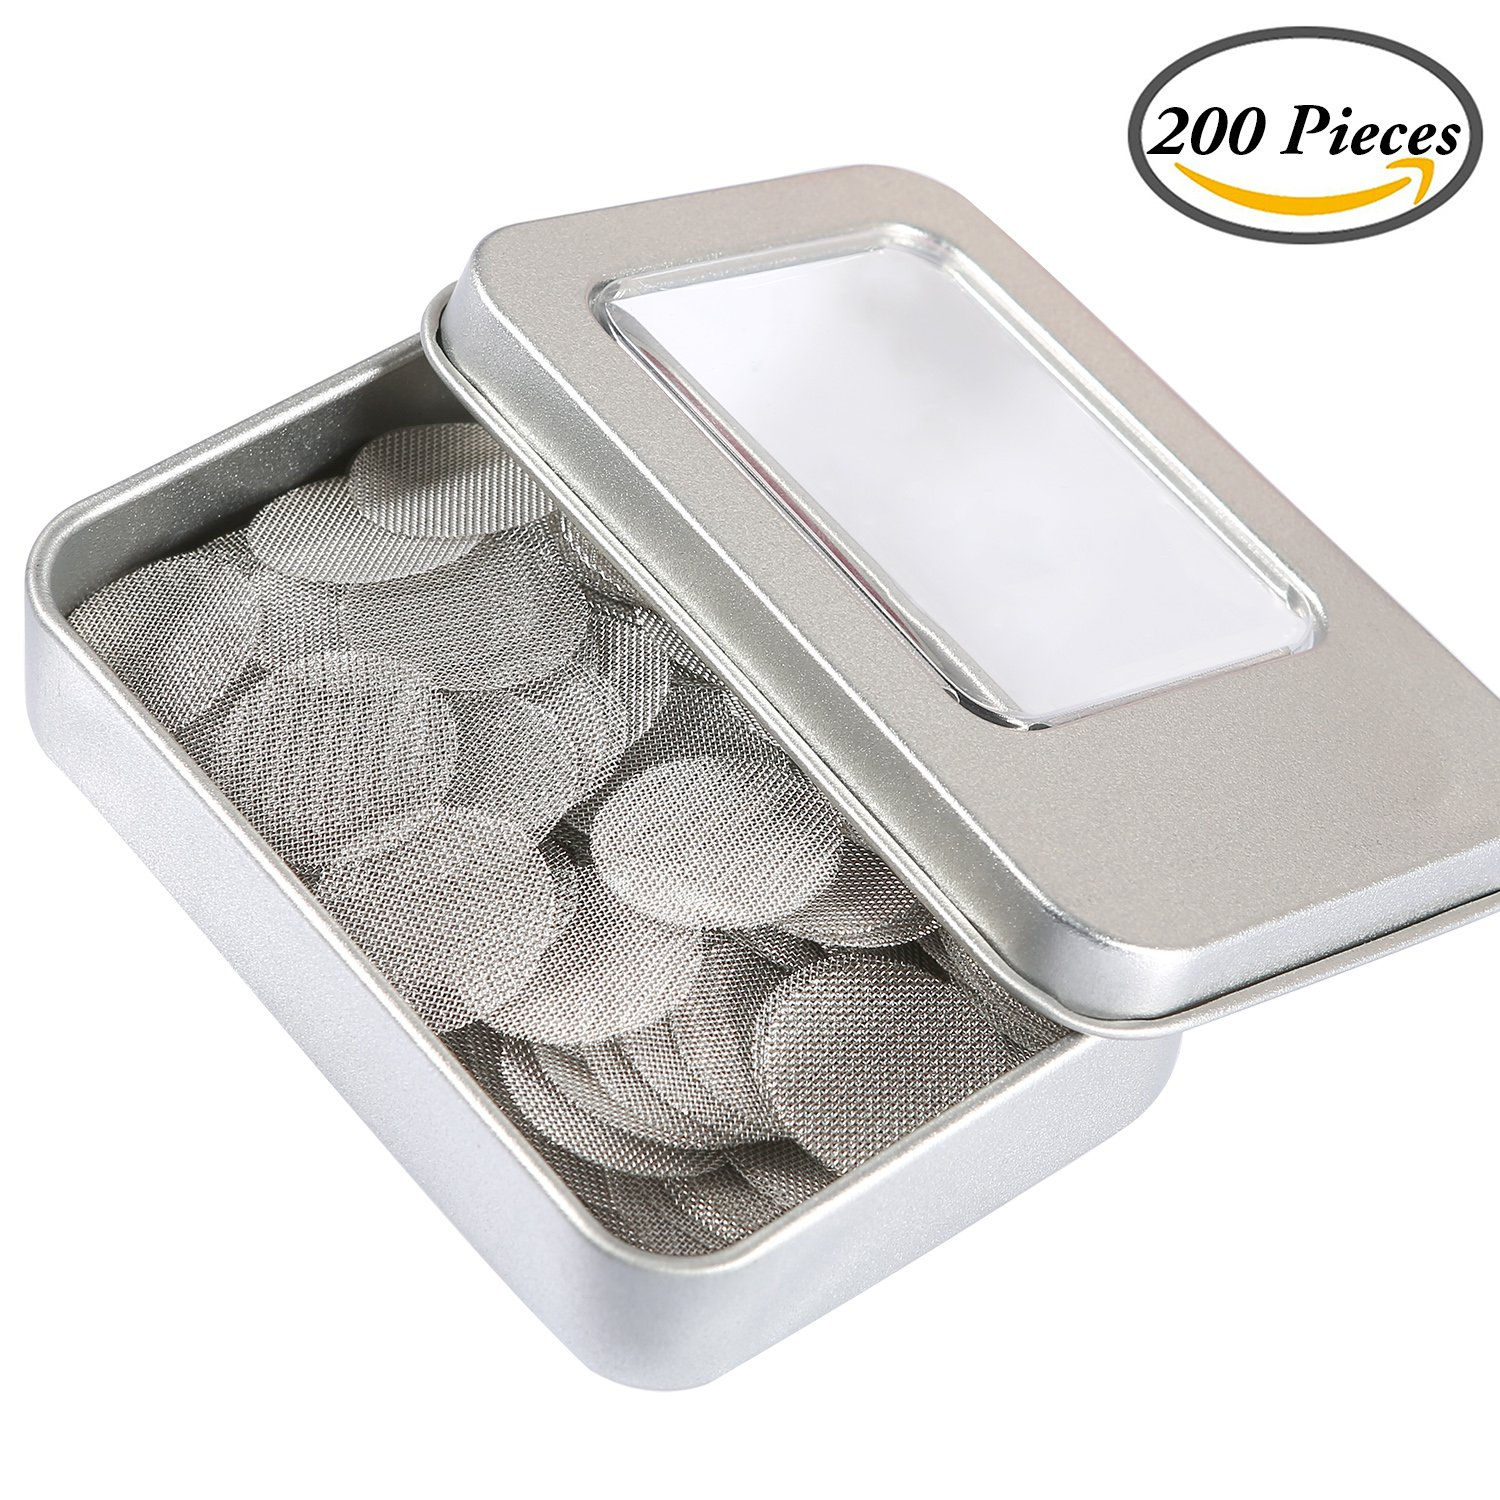 Coobey 200 Pieces Stainless Steel Screen Smoking Pipe Screens Filters 0.75 Inch with Silver Metal Boxe (Silver)